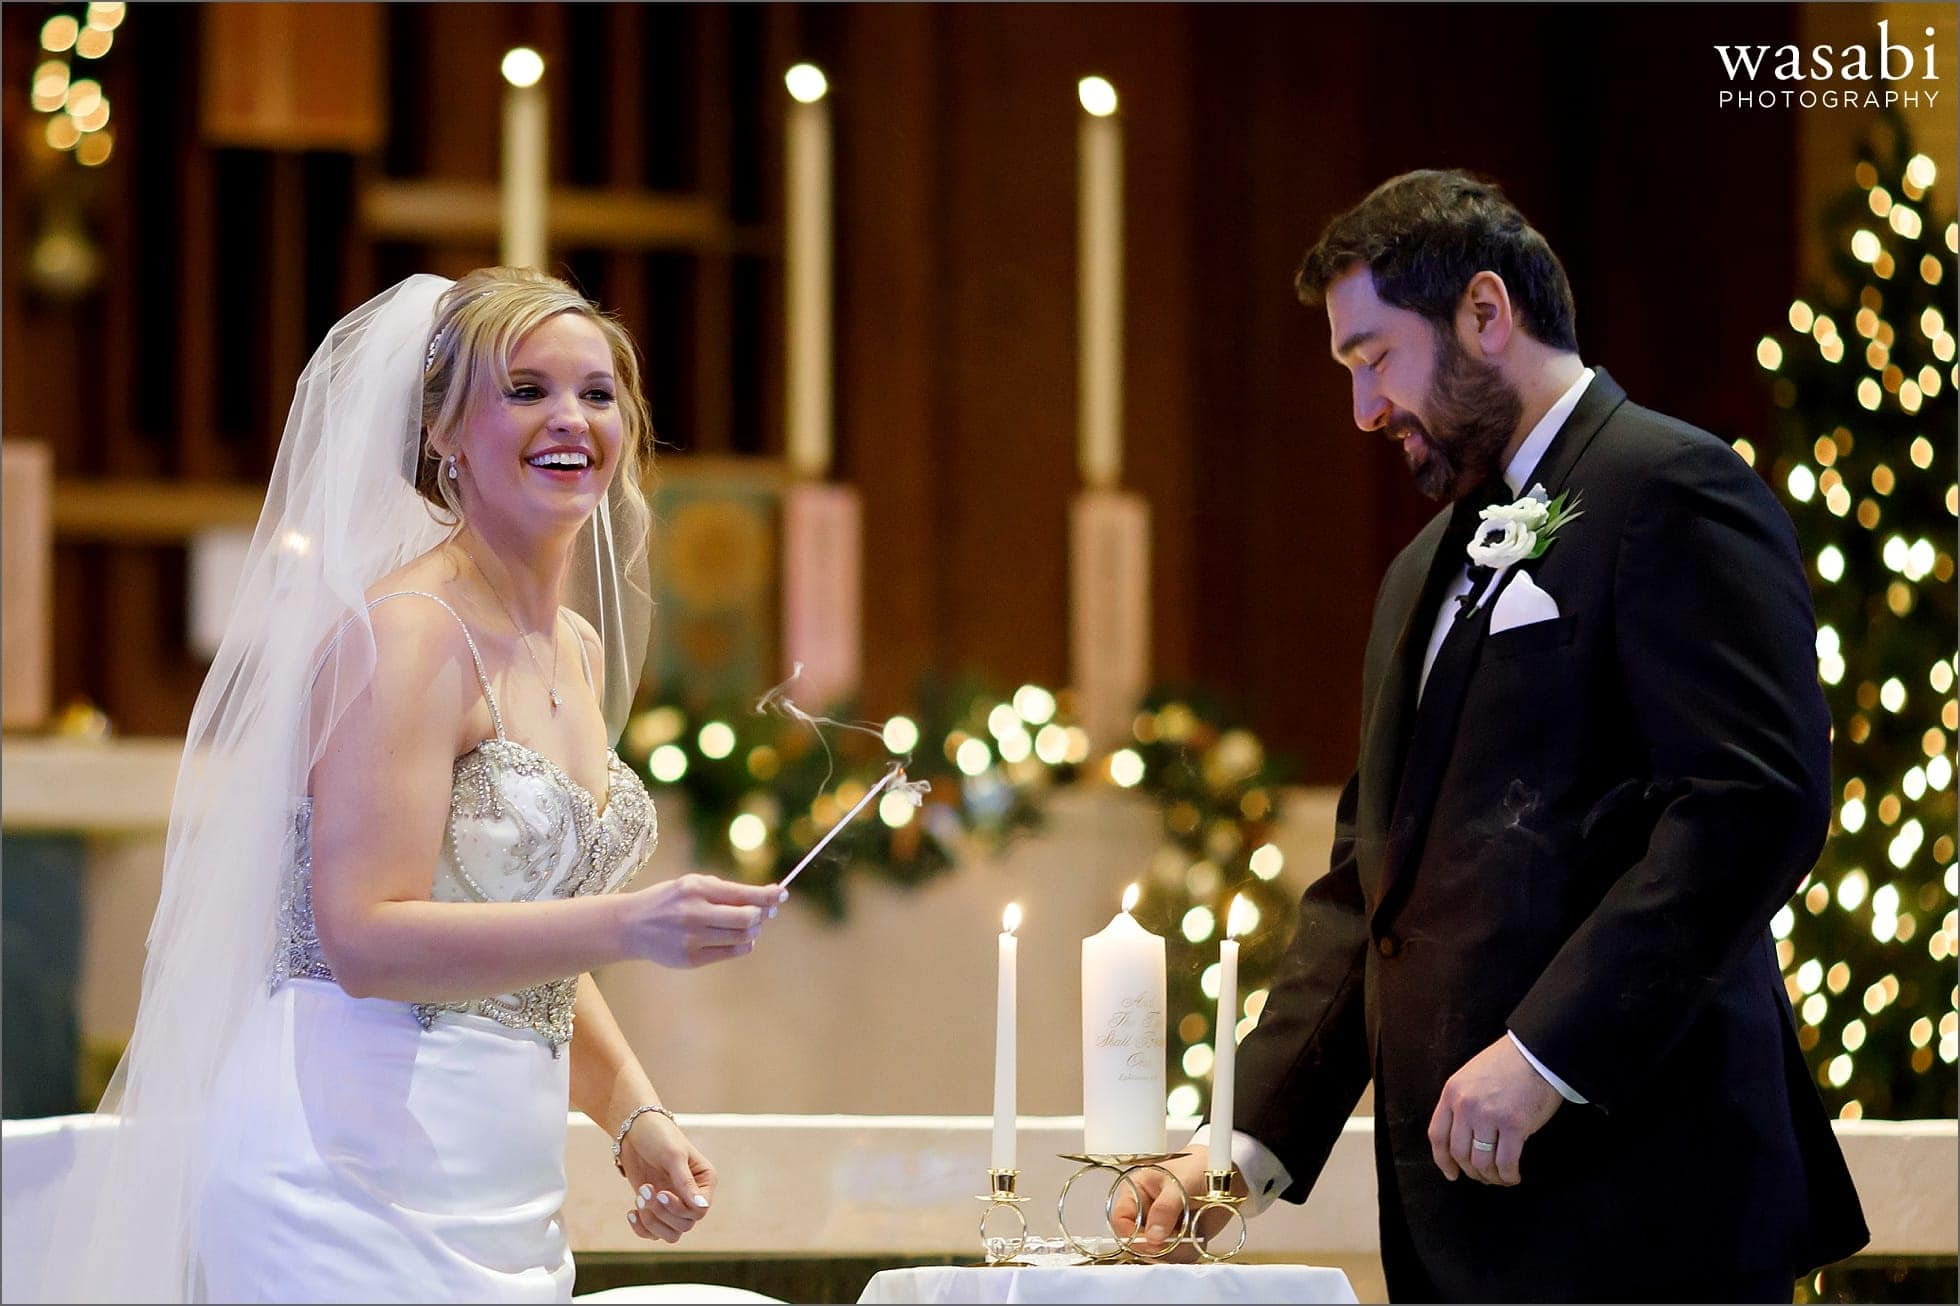 bride blows out candle during wedding ceremony at Immaculate Conception Catholic Church in Chicago